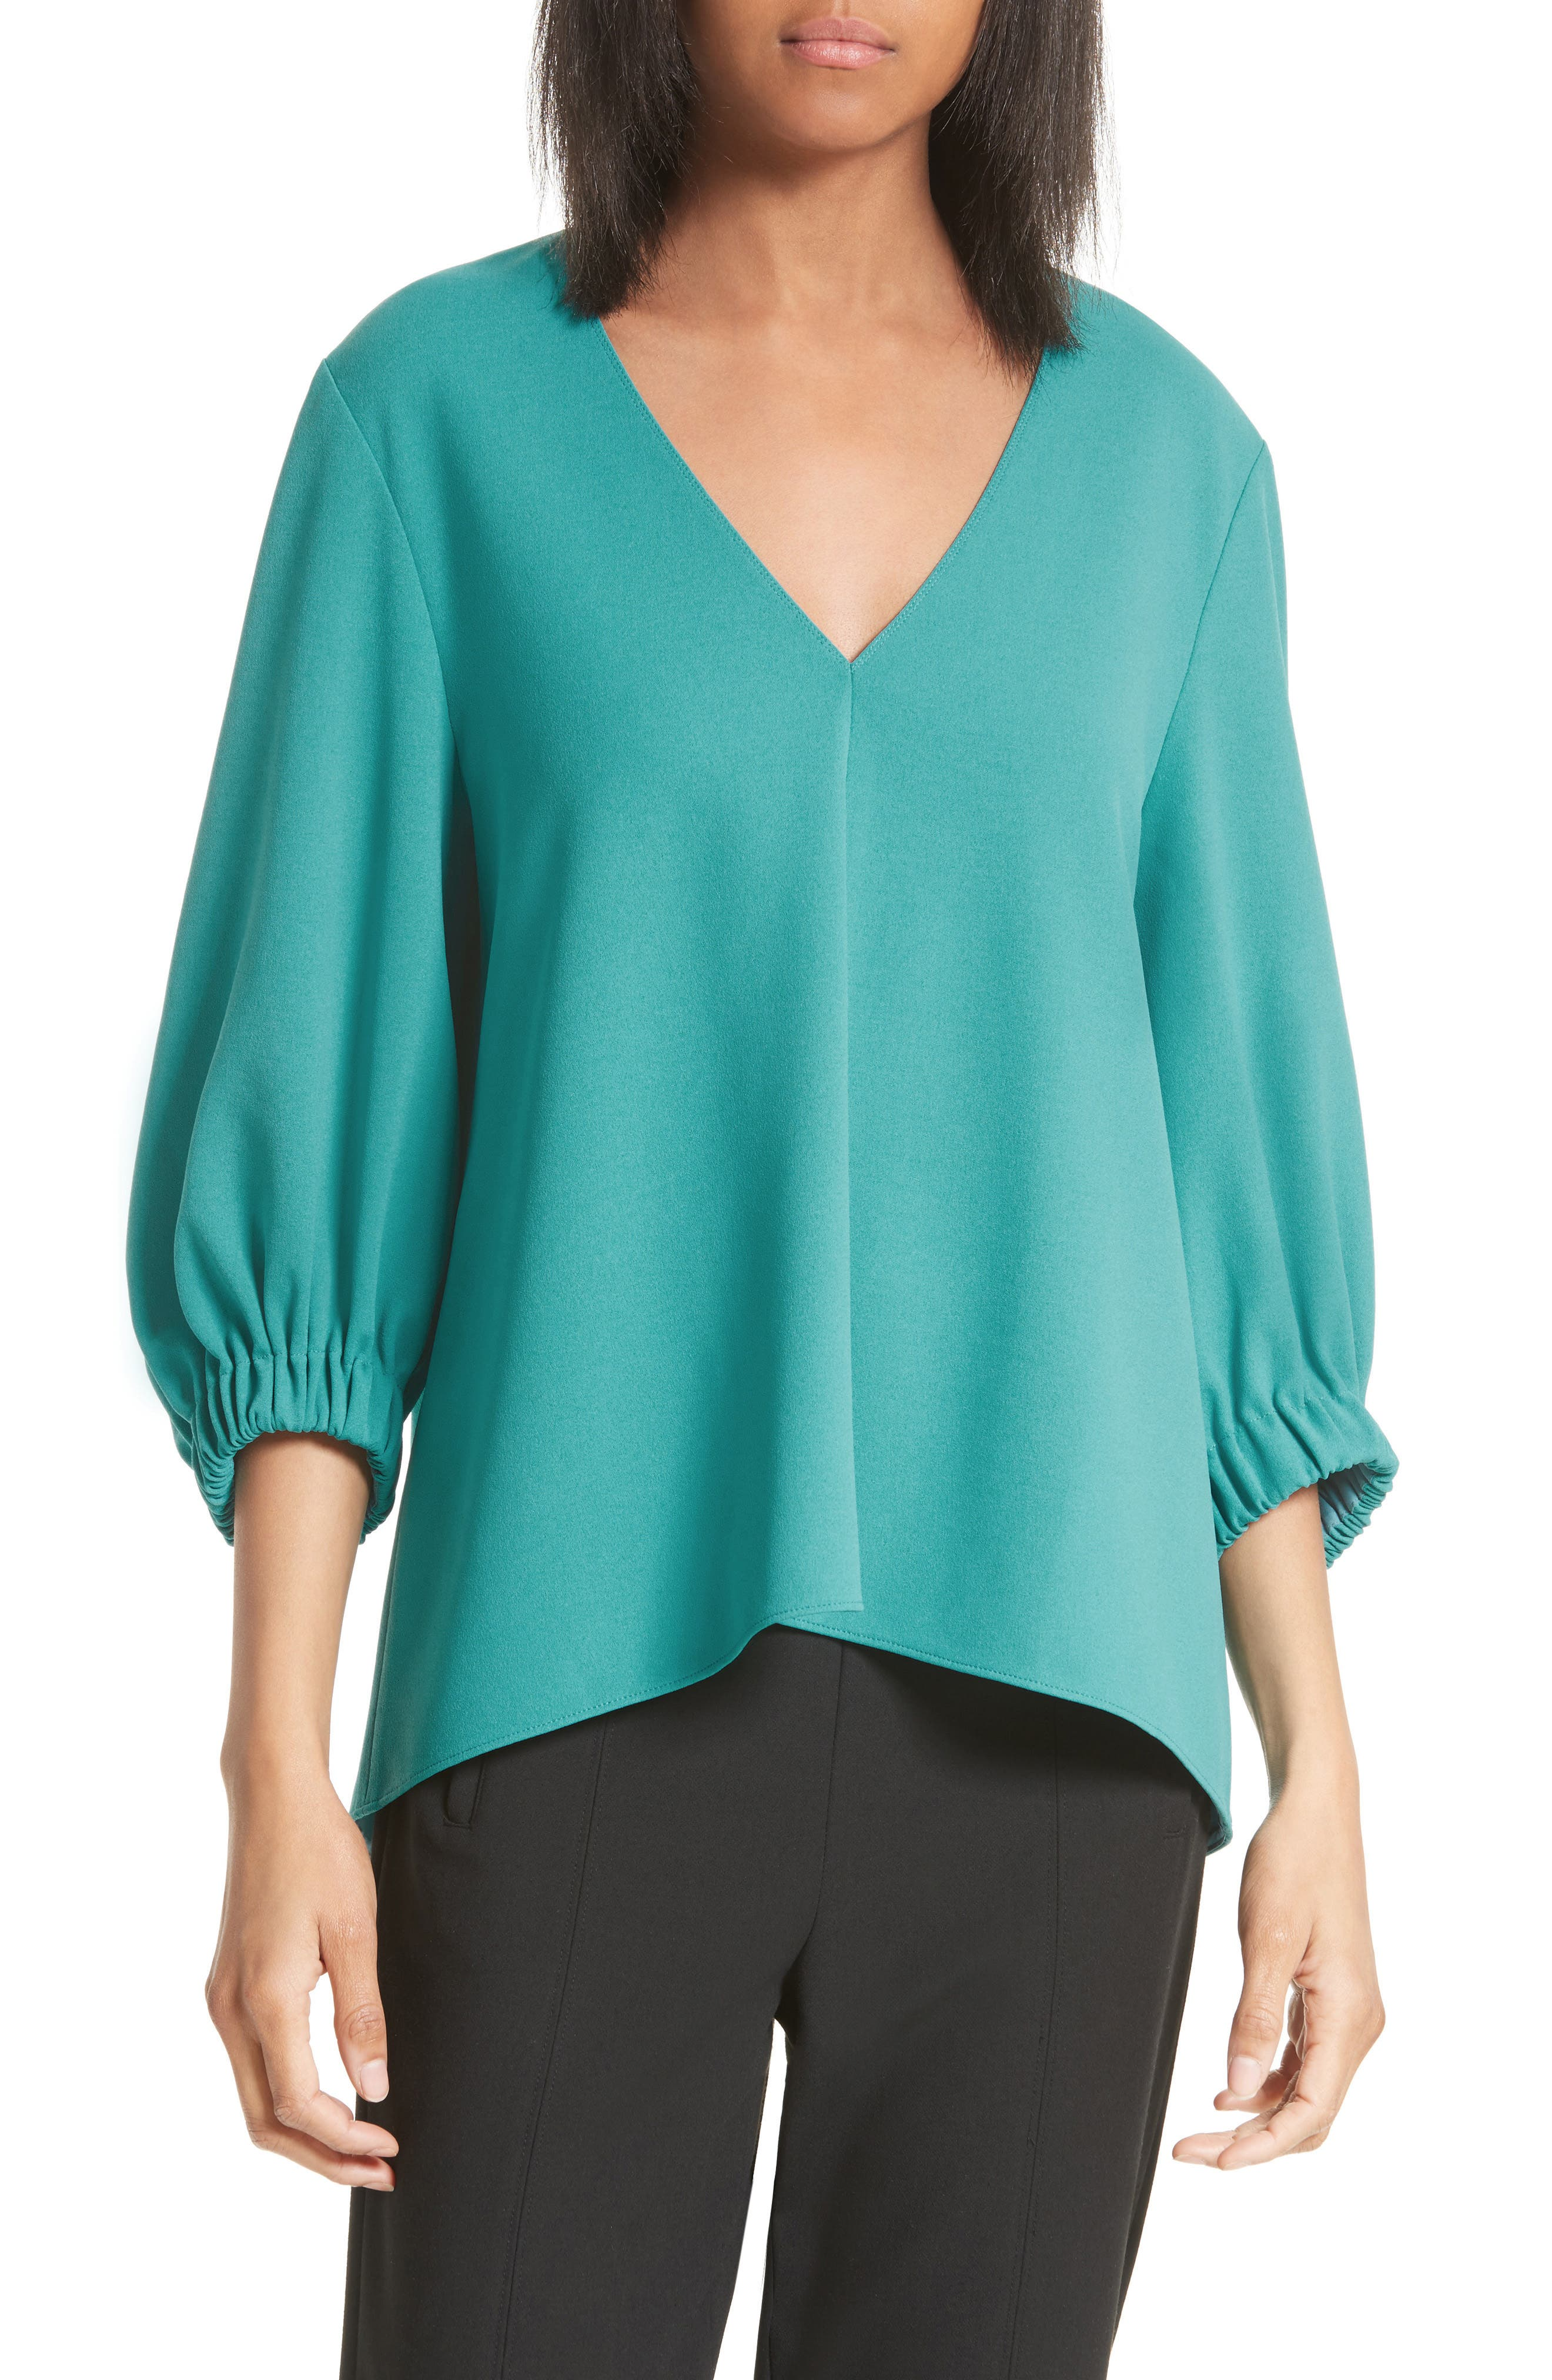 Alternate Image 1 Selected - Tibi Stretch Crepe Trapeze Top